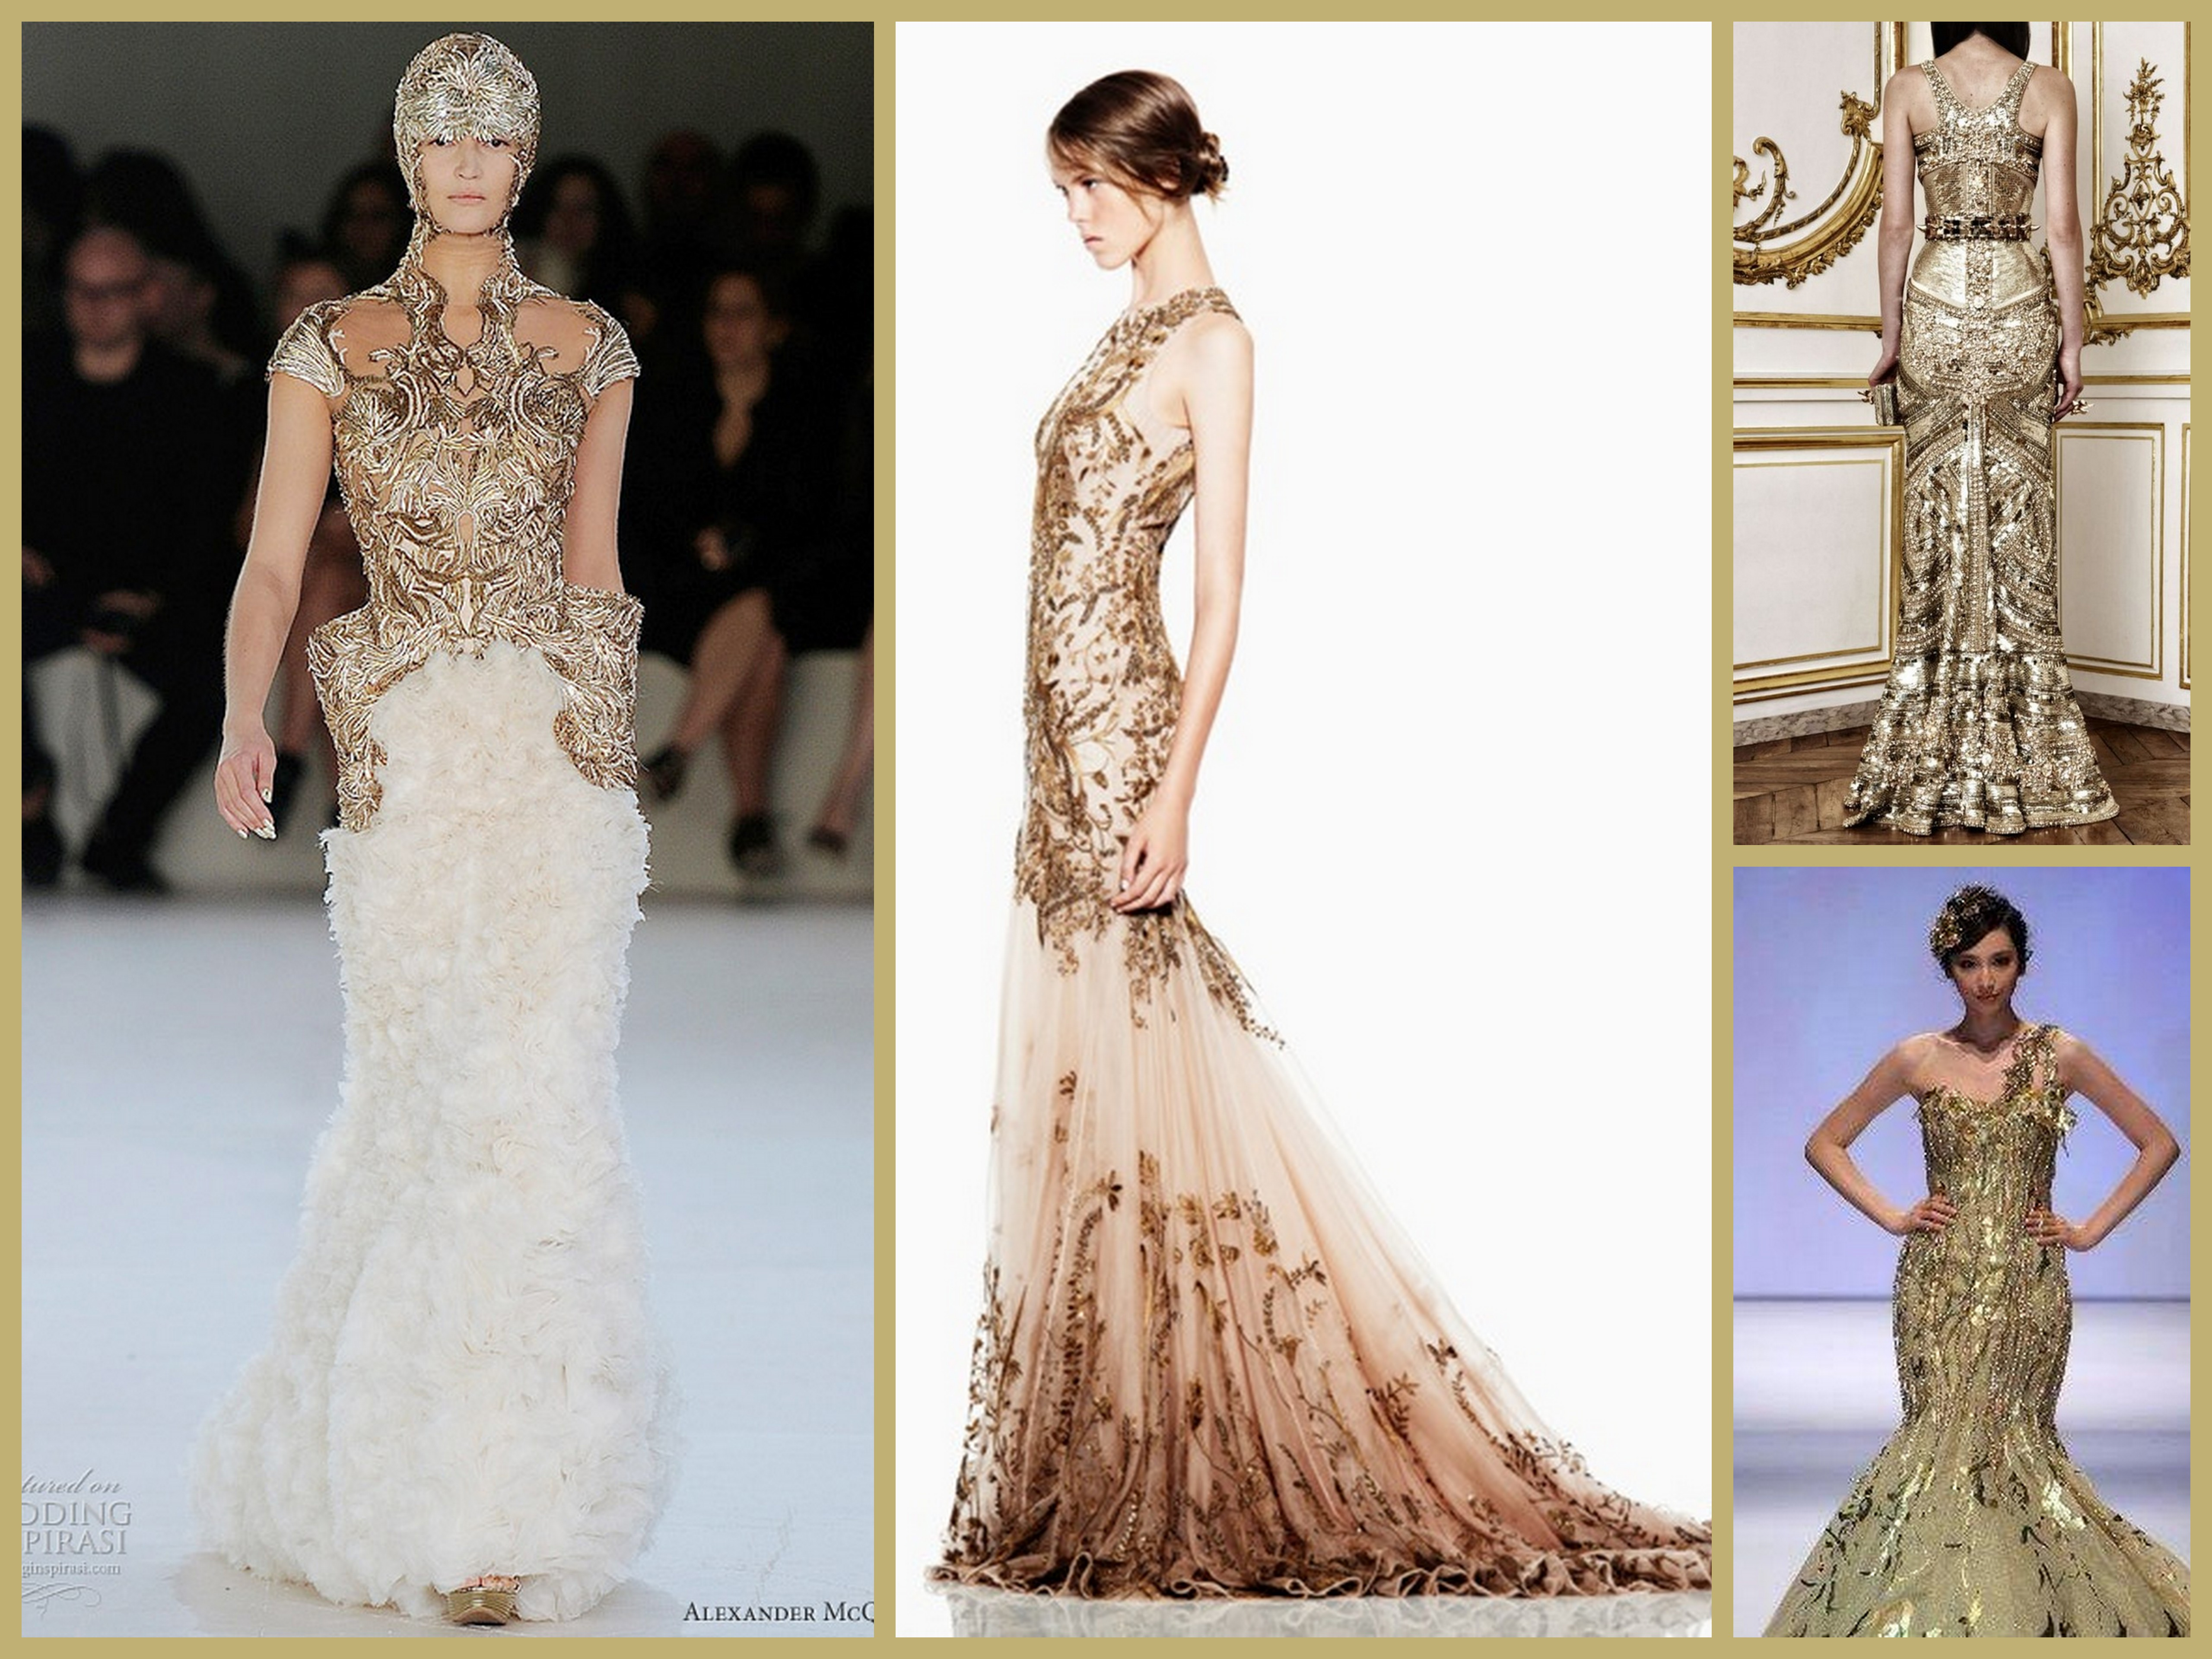 Gilded Treasures Gowns Fantastical Wedding Stylings